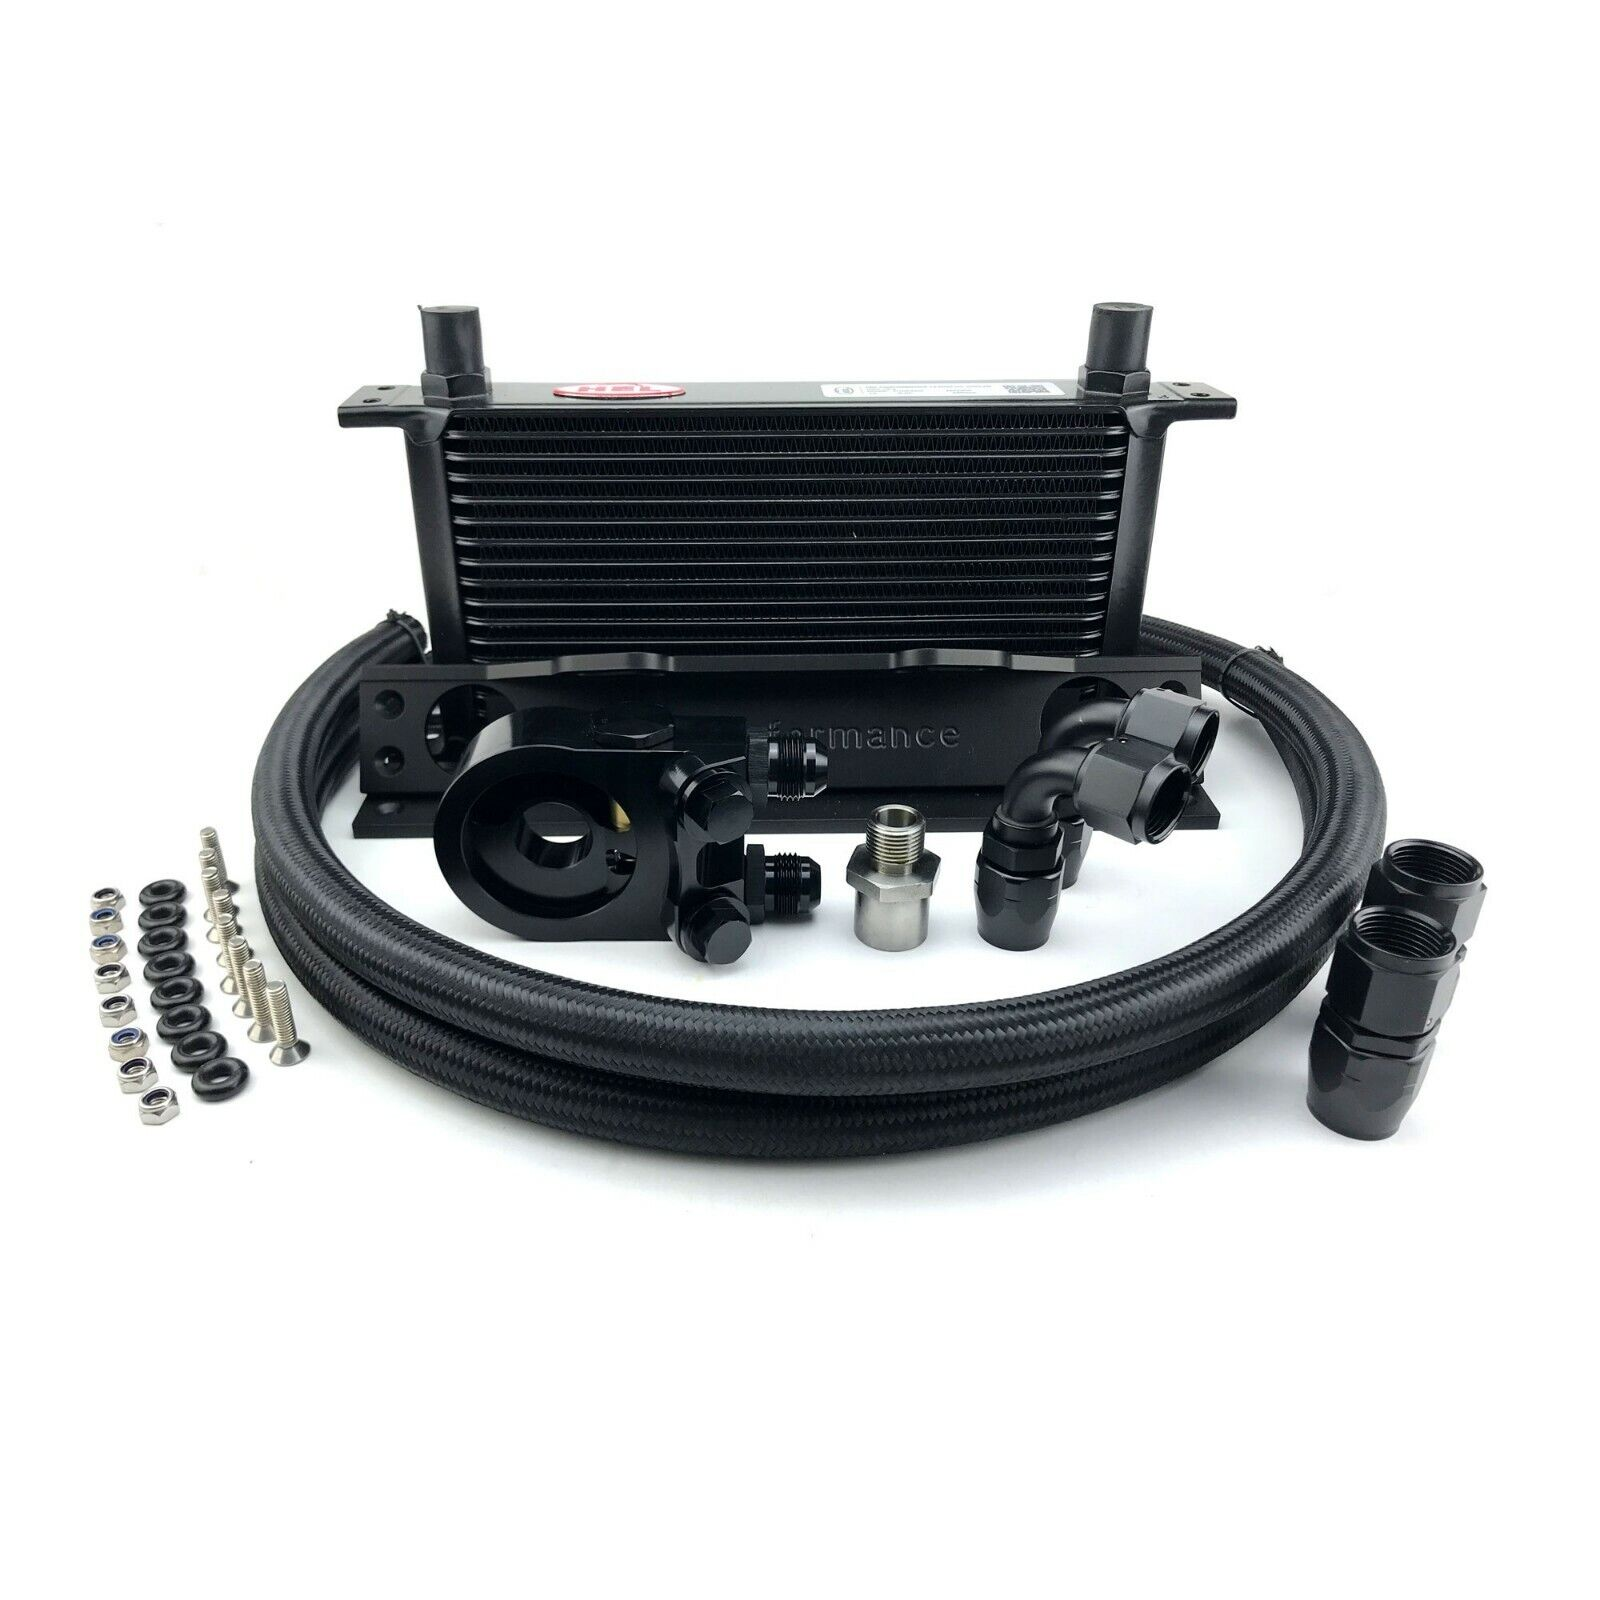 HEL Performance Oil Cooler Kit for Nissan Skyline R34 GTR Models [HOCK-NIS-006]